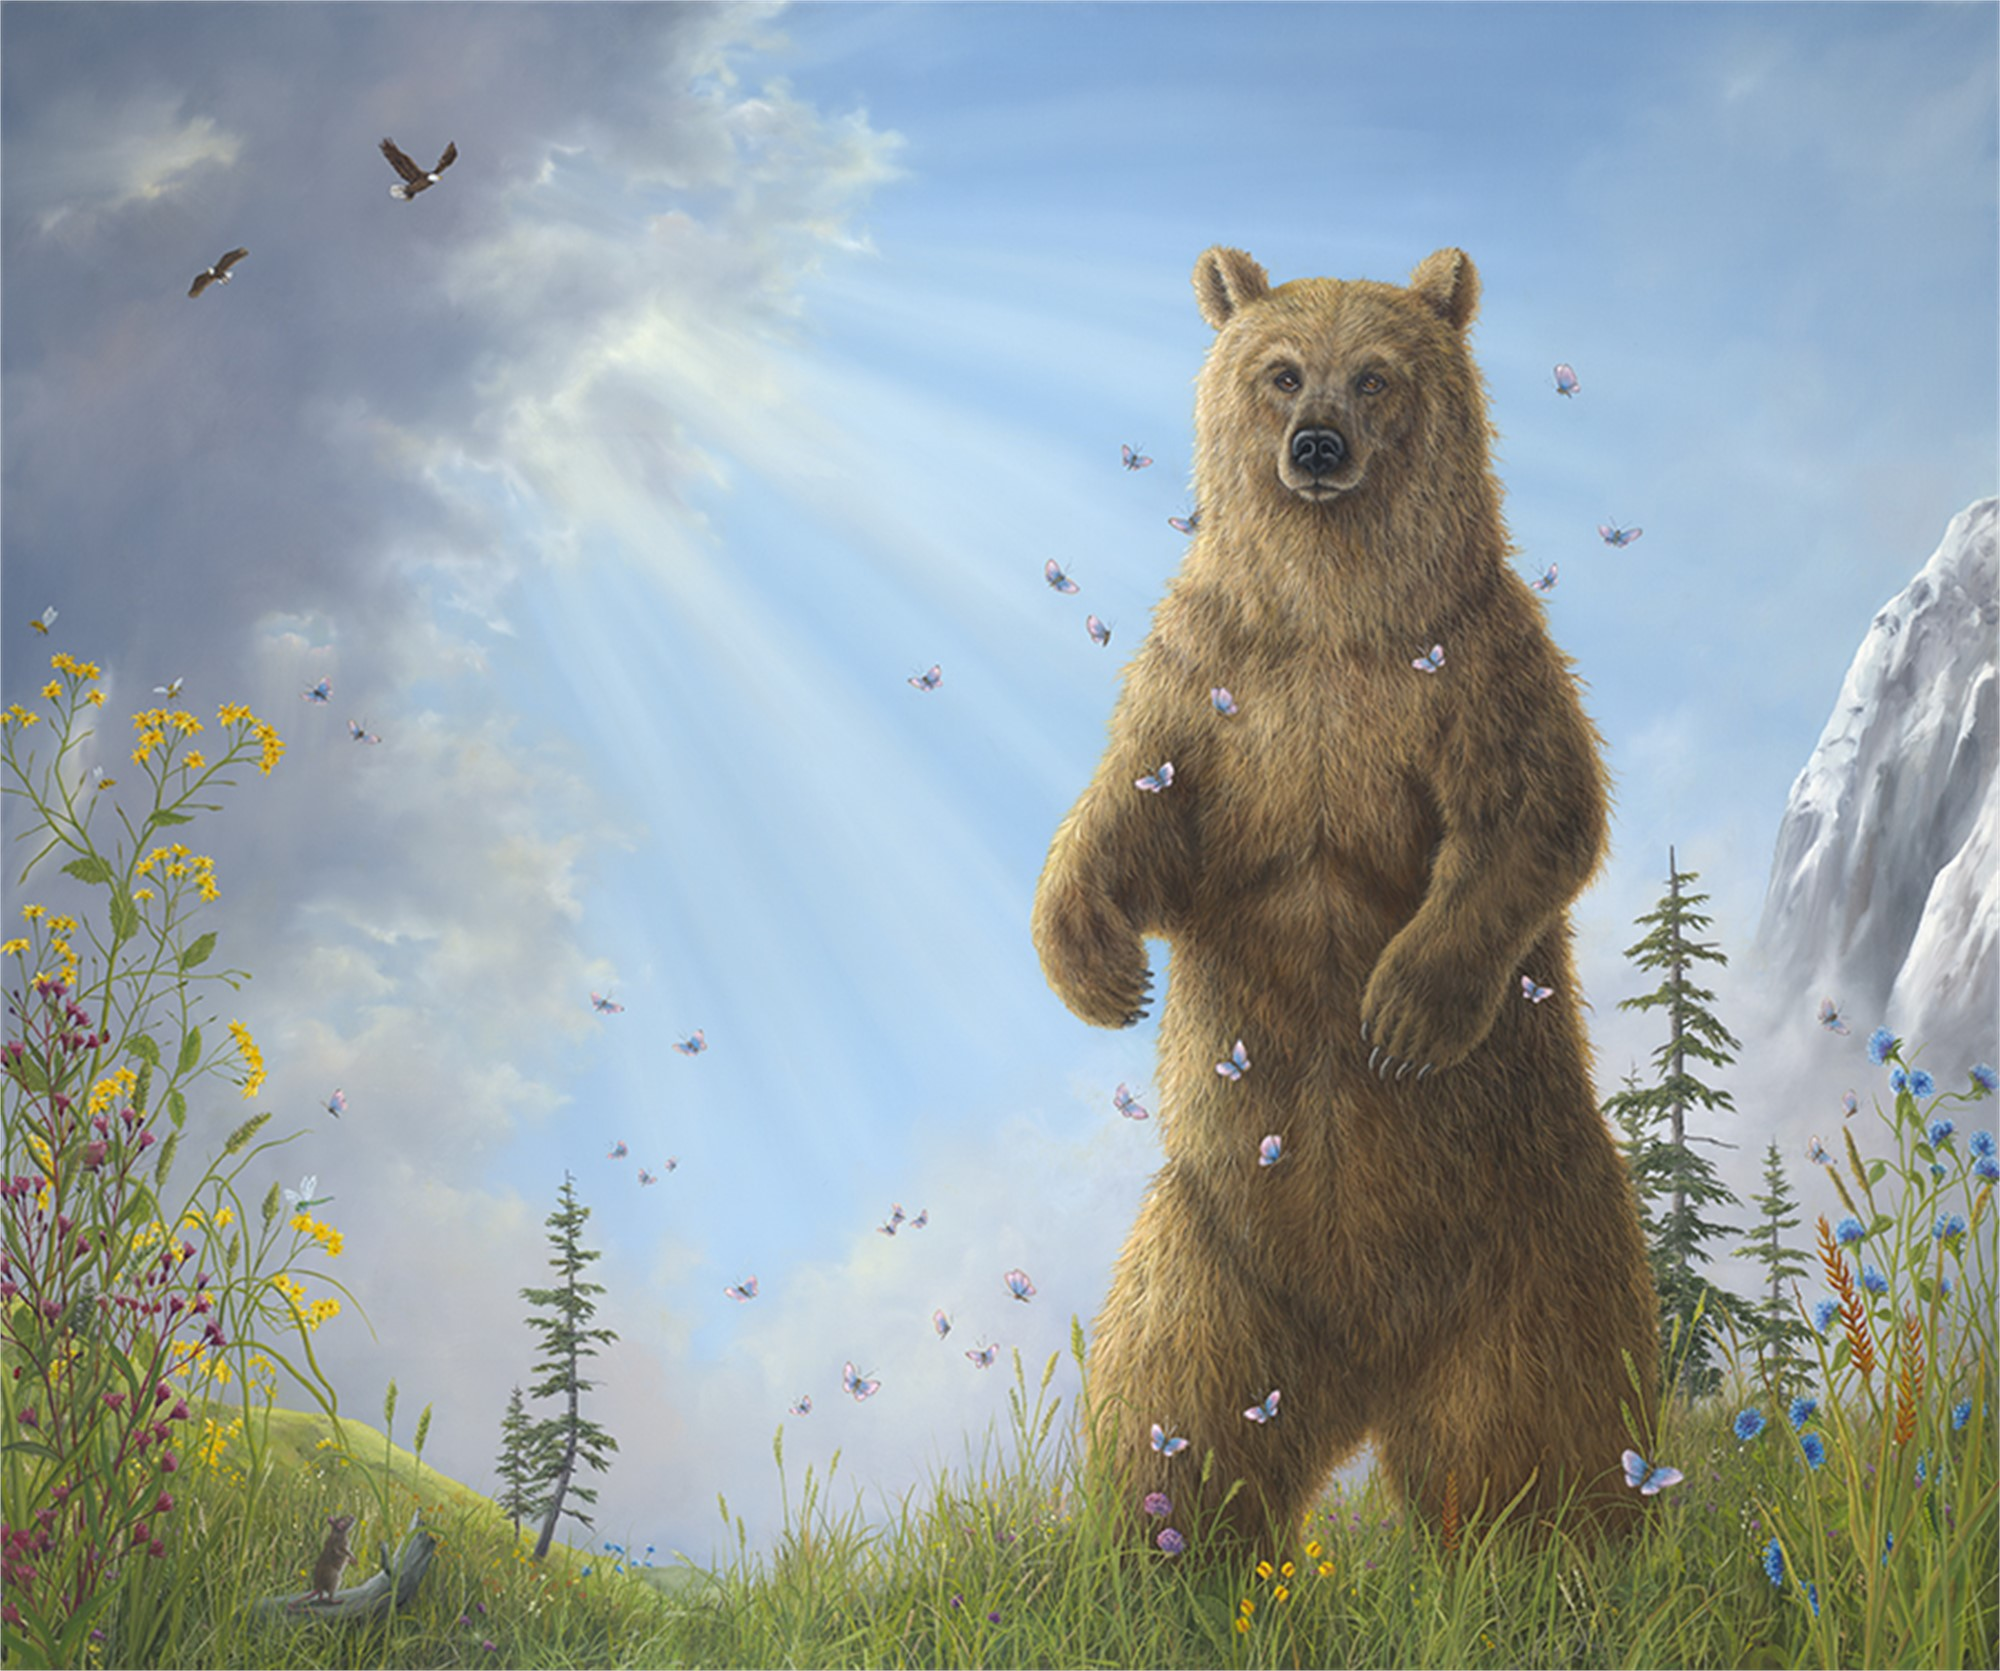 Majesty (AP Hand-Enhanced) by Robert Bissell